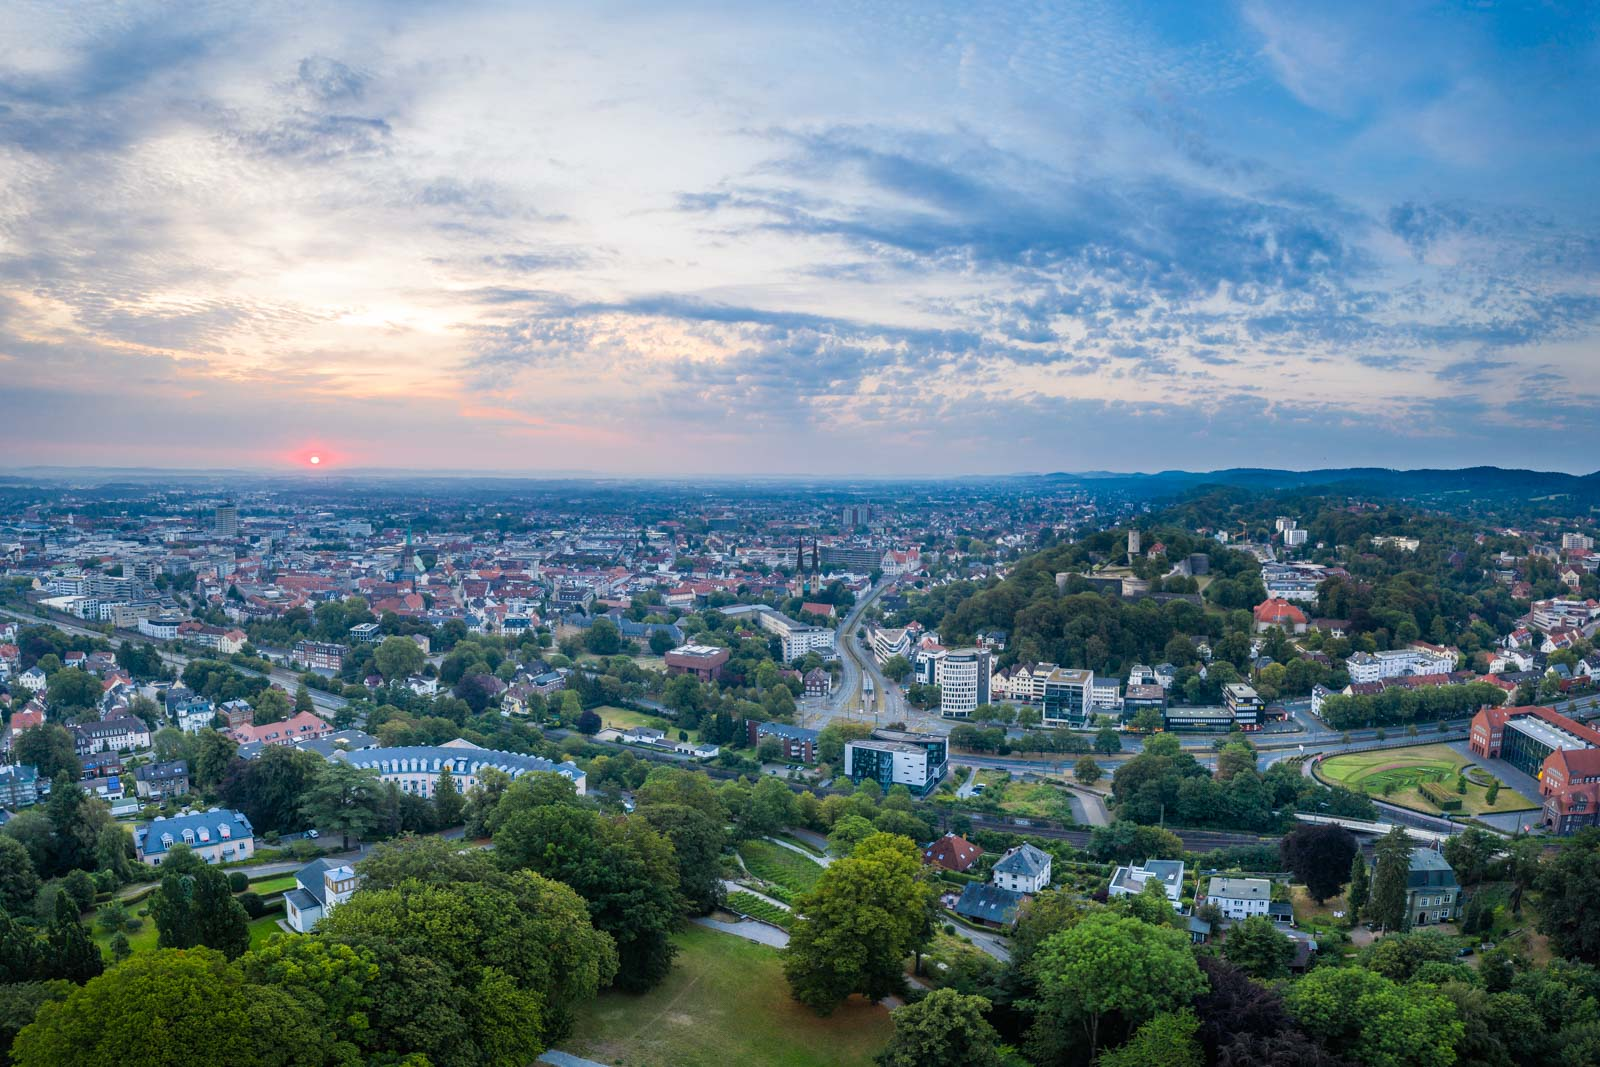 Sunrise over the city centre in August 2020 (Bielefeld, Germany).